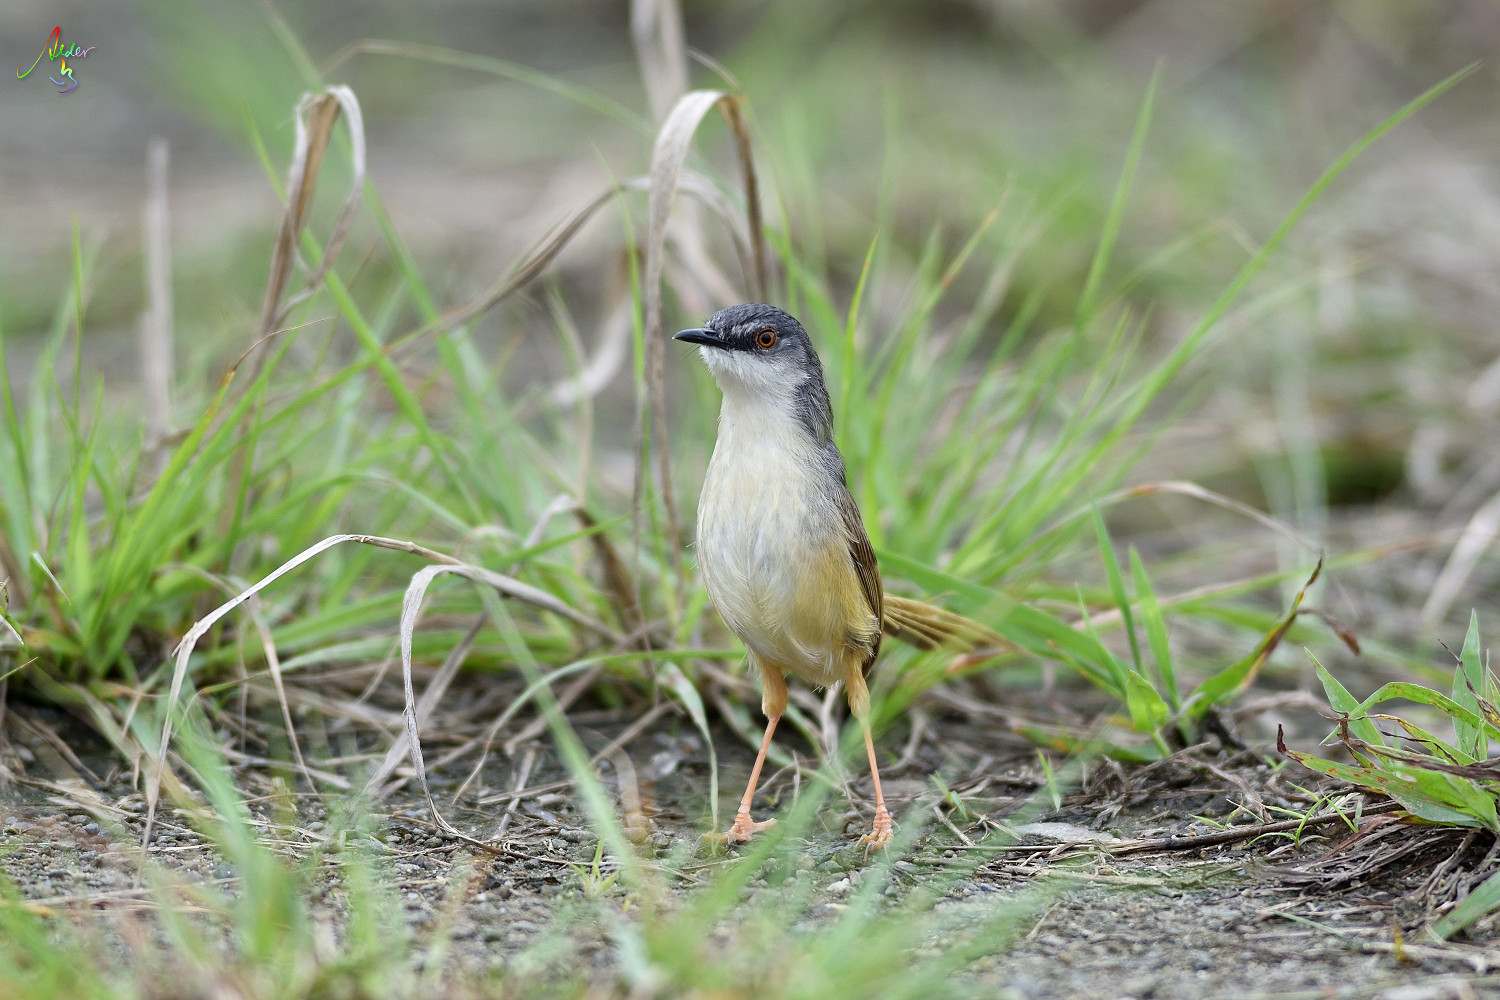 Yellow-bellied_Prinia_3498